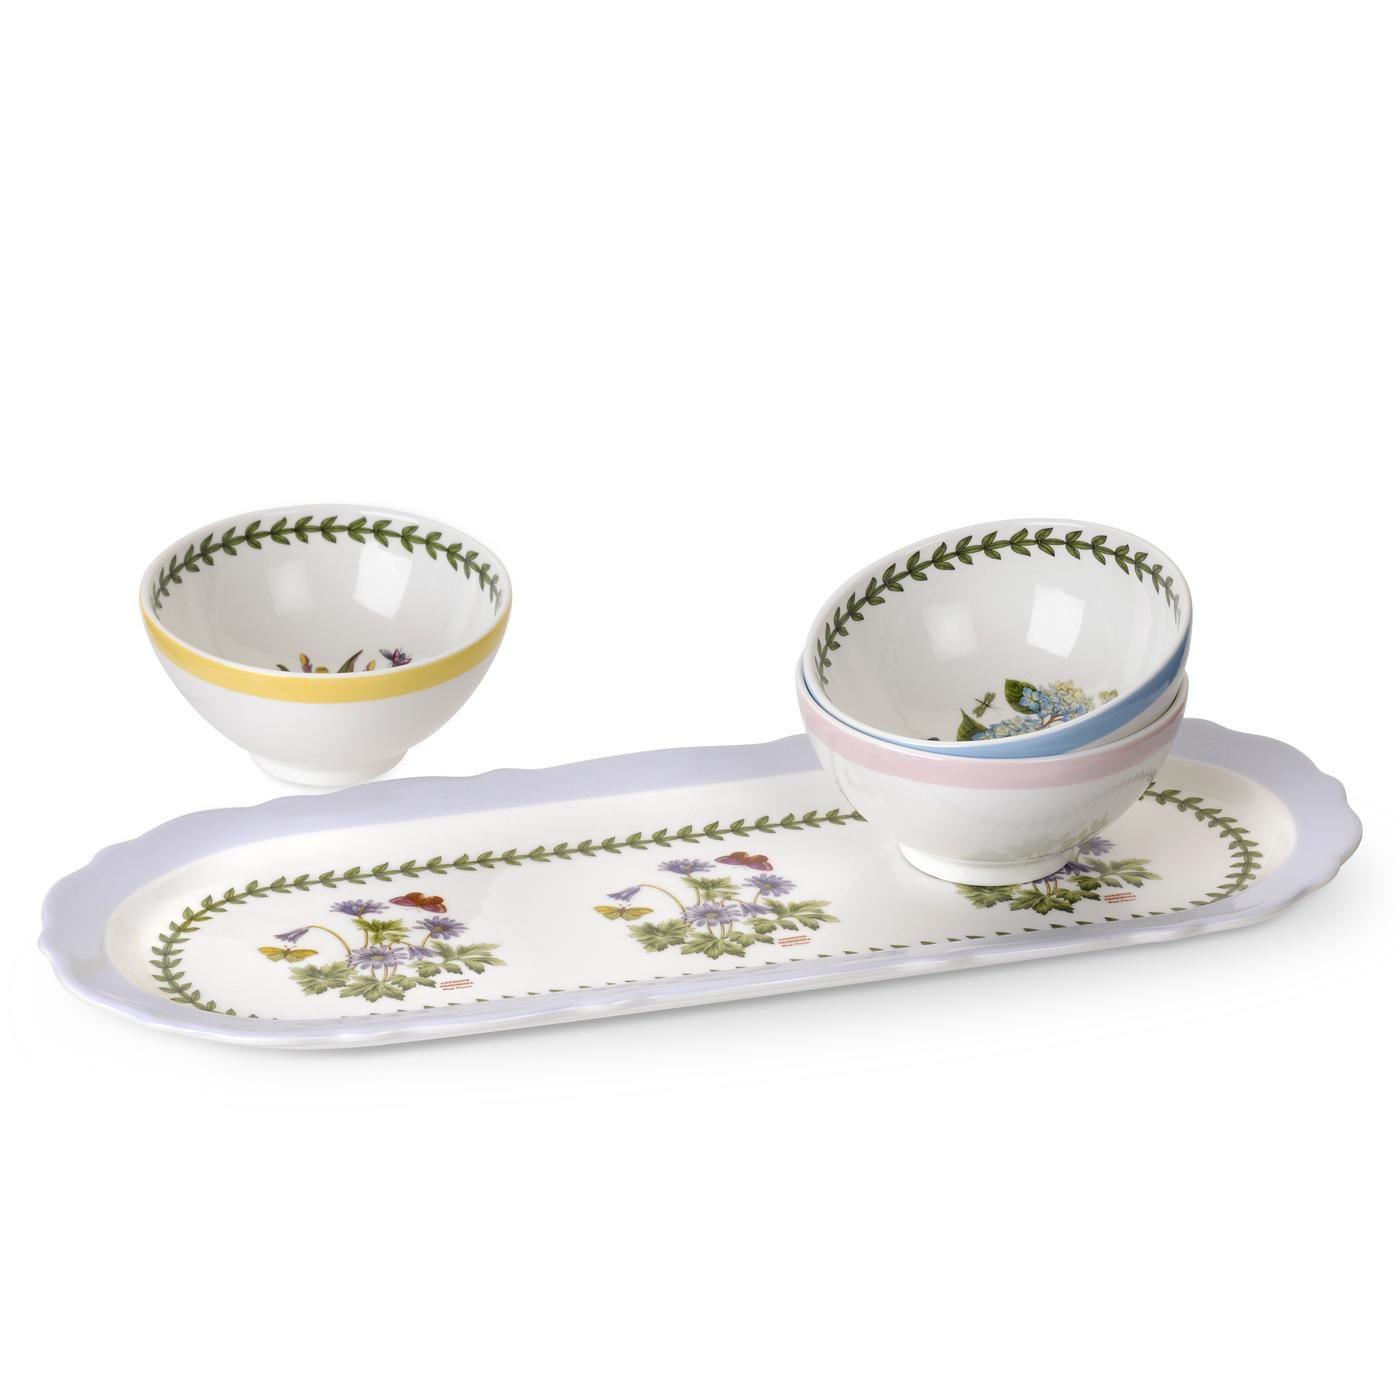 Portmeirion Botanic Garden Terrace Scalloped Sandwich Tray and Assorted Set of 3 Dip Dishes image number 0